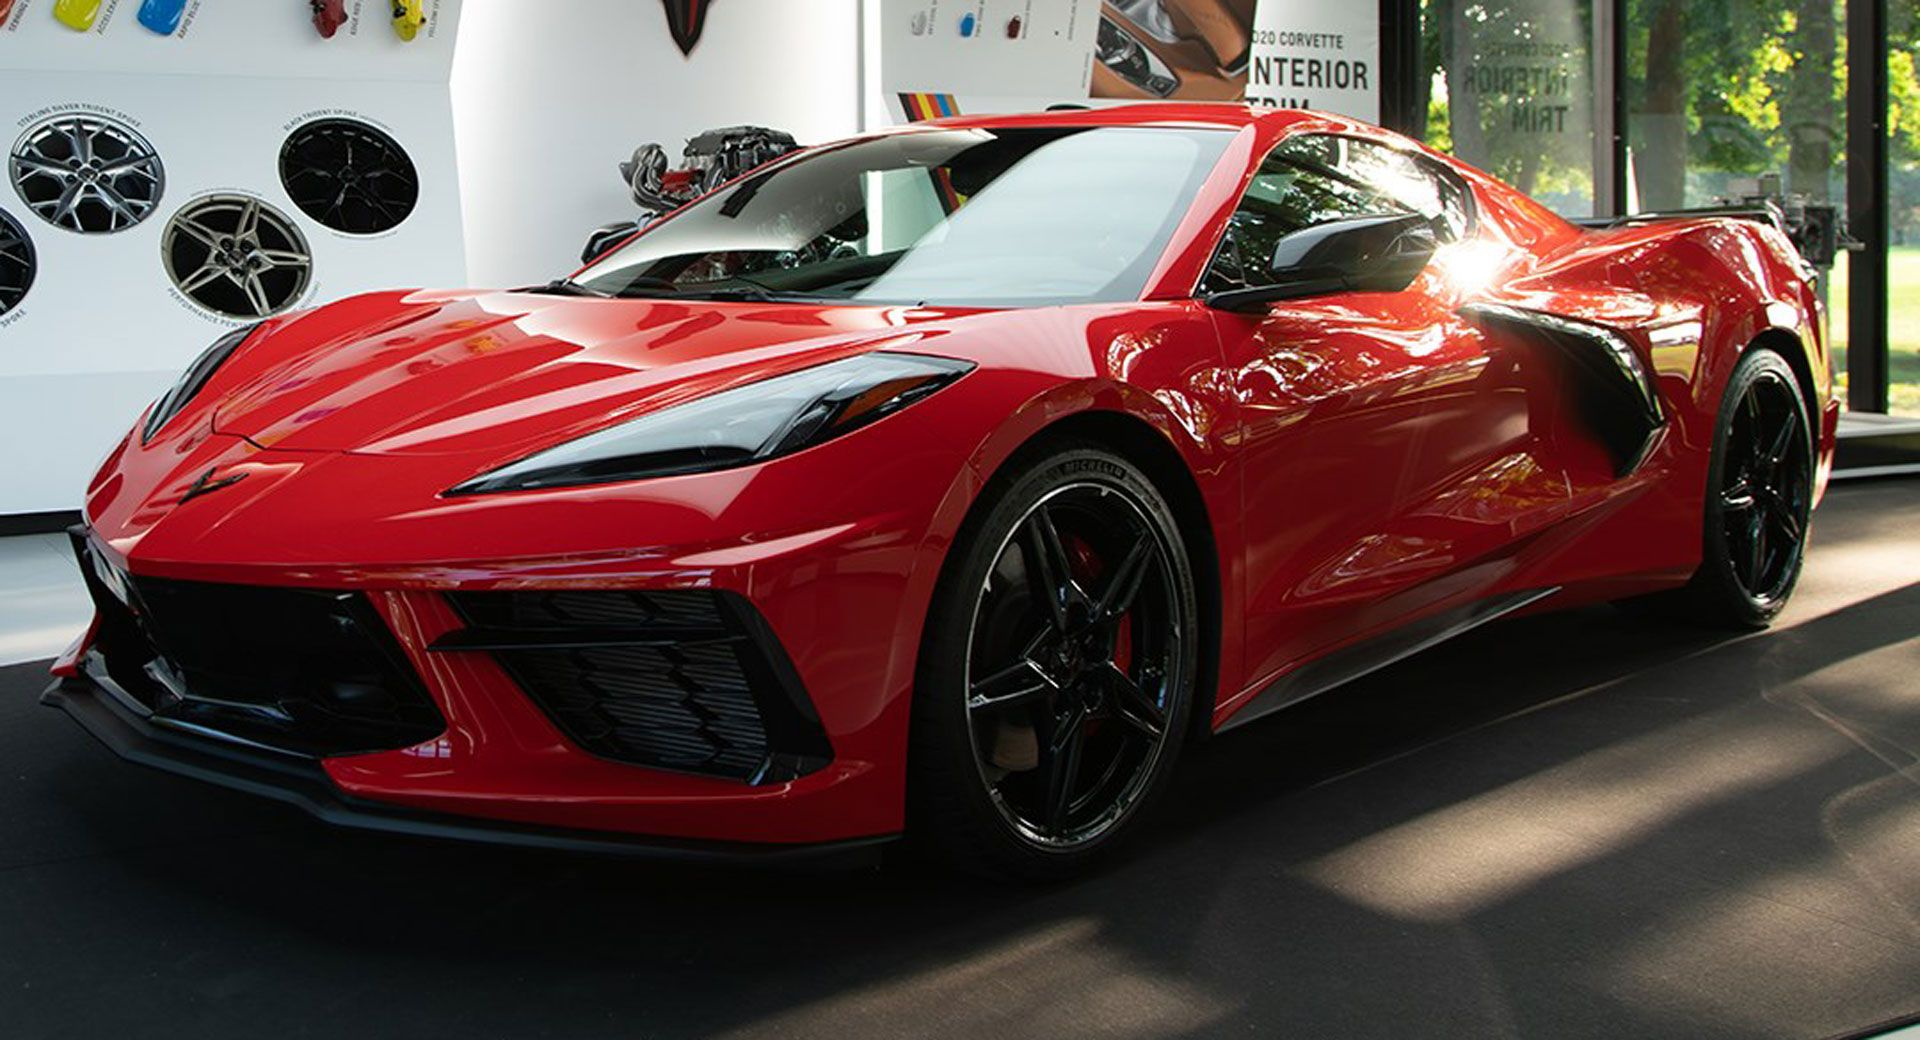 Chevrolet Says 2020 Corvette C8 First Deliveries To Start Before The End Of February In 2020 Chevrolet Corvette Corvette Convertible